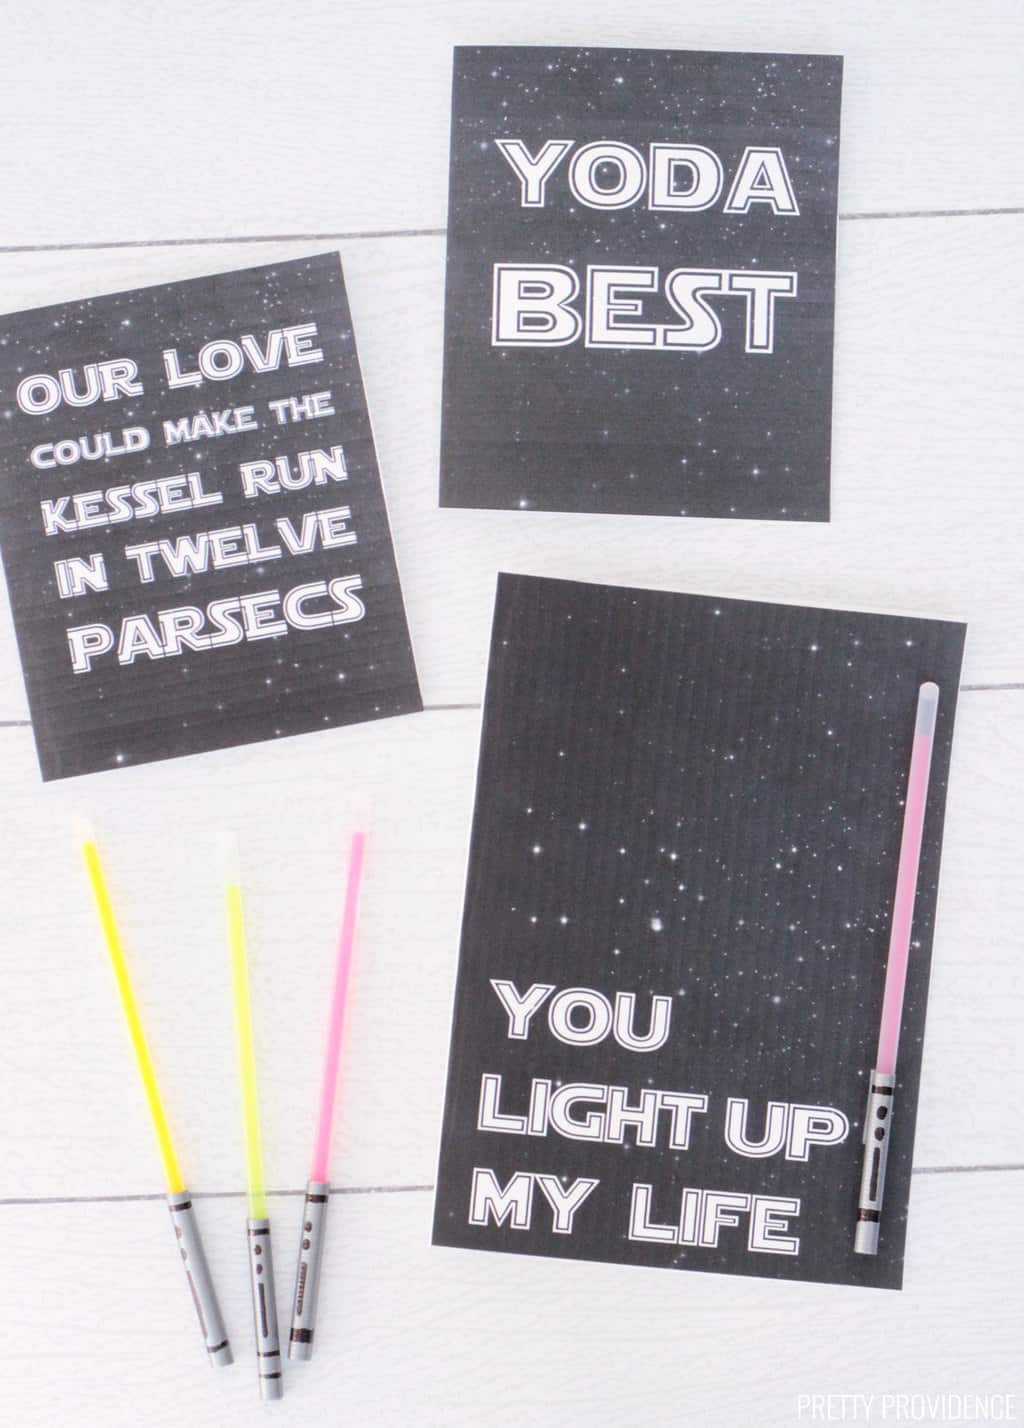 Star Wars Valentines cards 'You Light up my Life' with glow stick light saber, 'Yoda Best' and 'Our love could make the kessel run in twelve parsecs' black and white printable valentines.